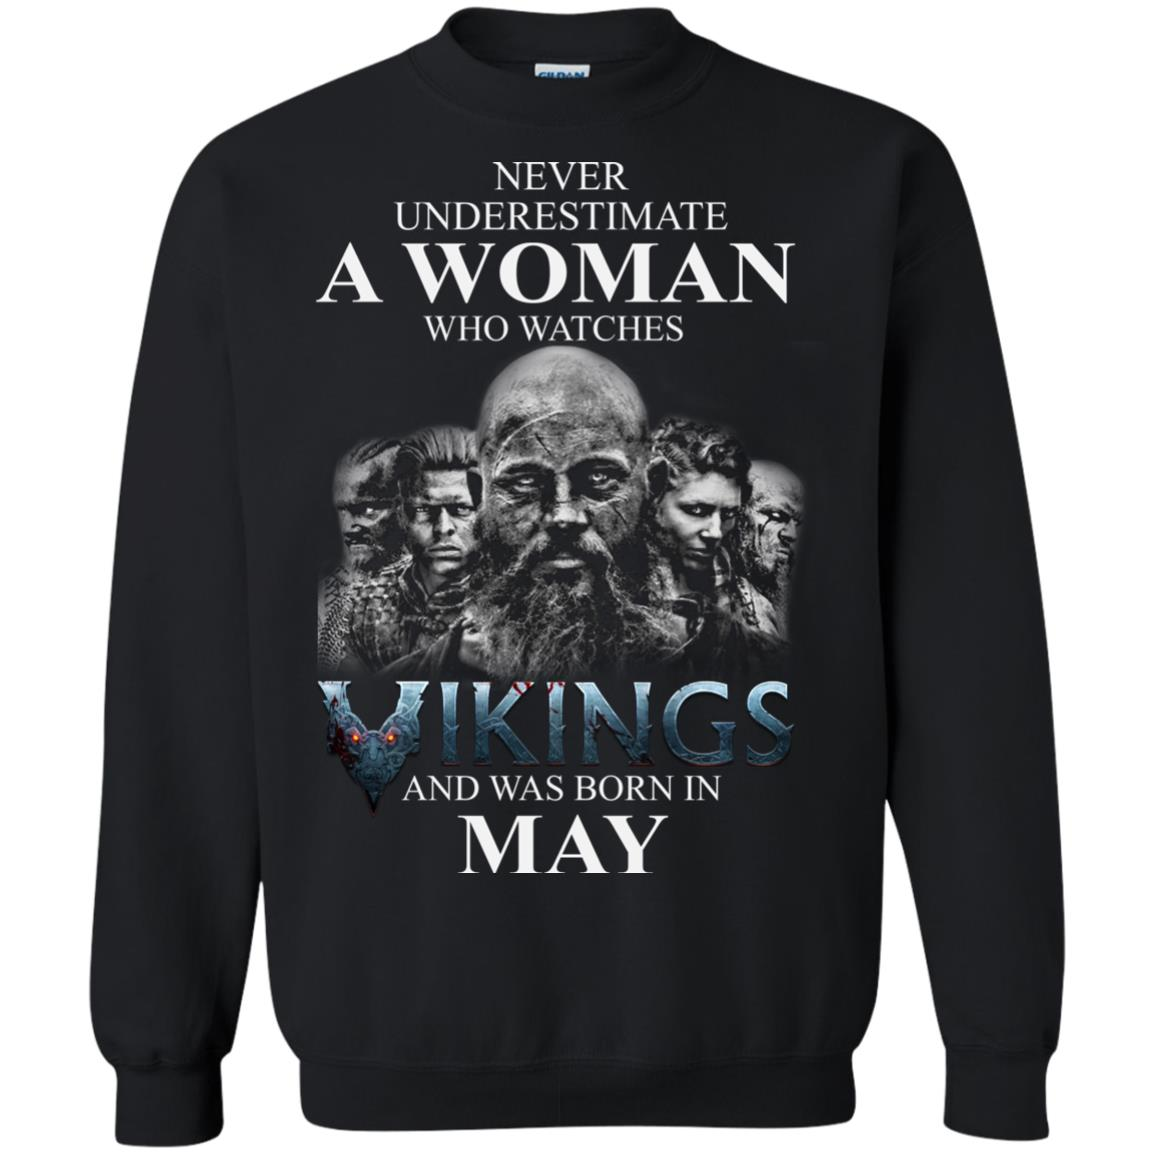 image 1309 - Never Underestimate A woman who watches Vikings and was born in May shirt